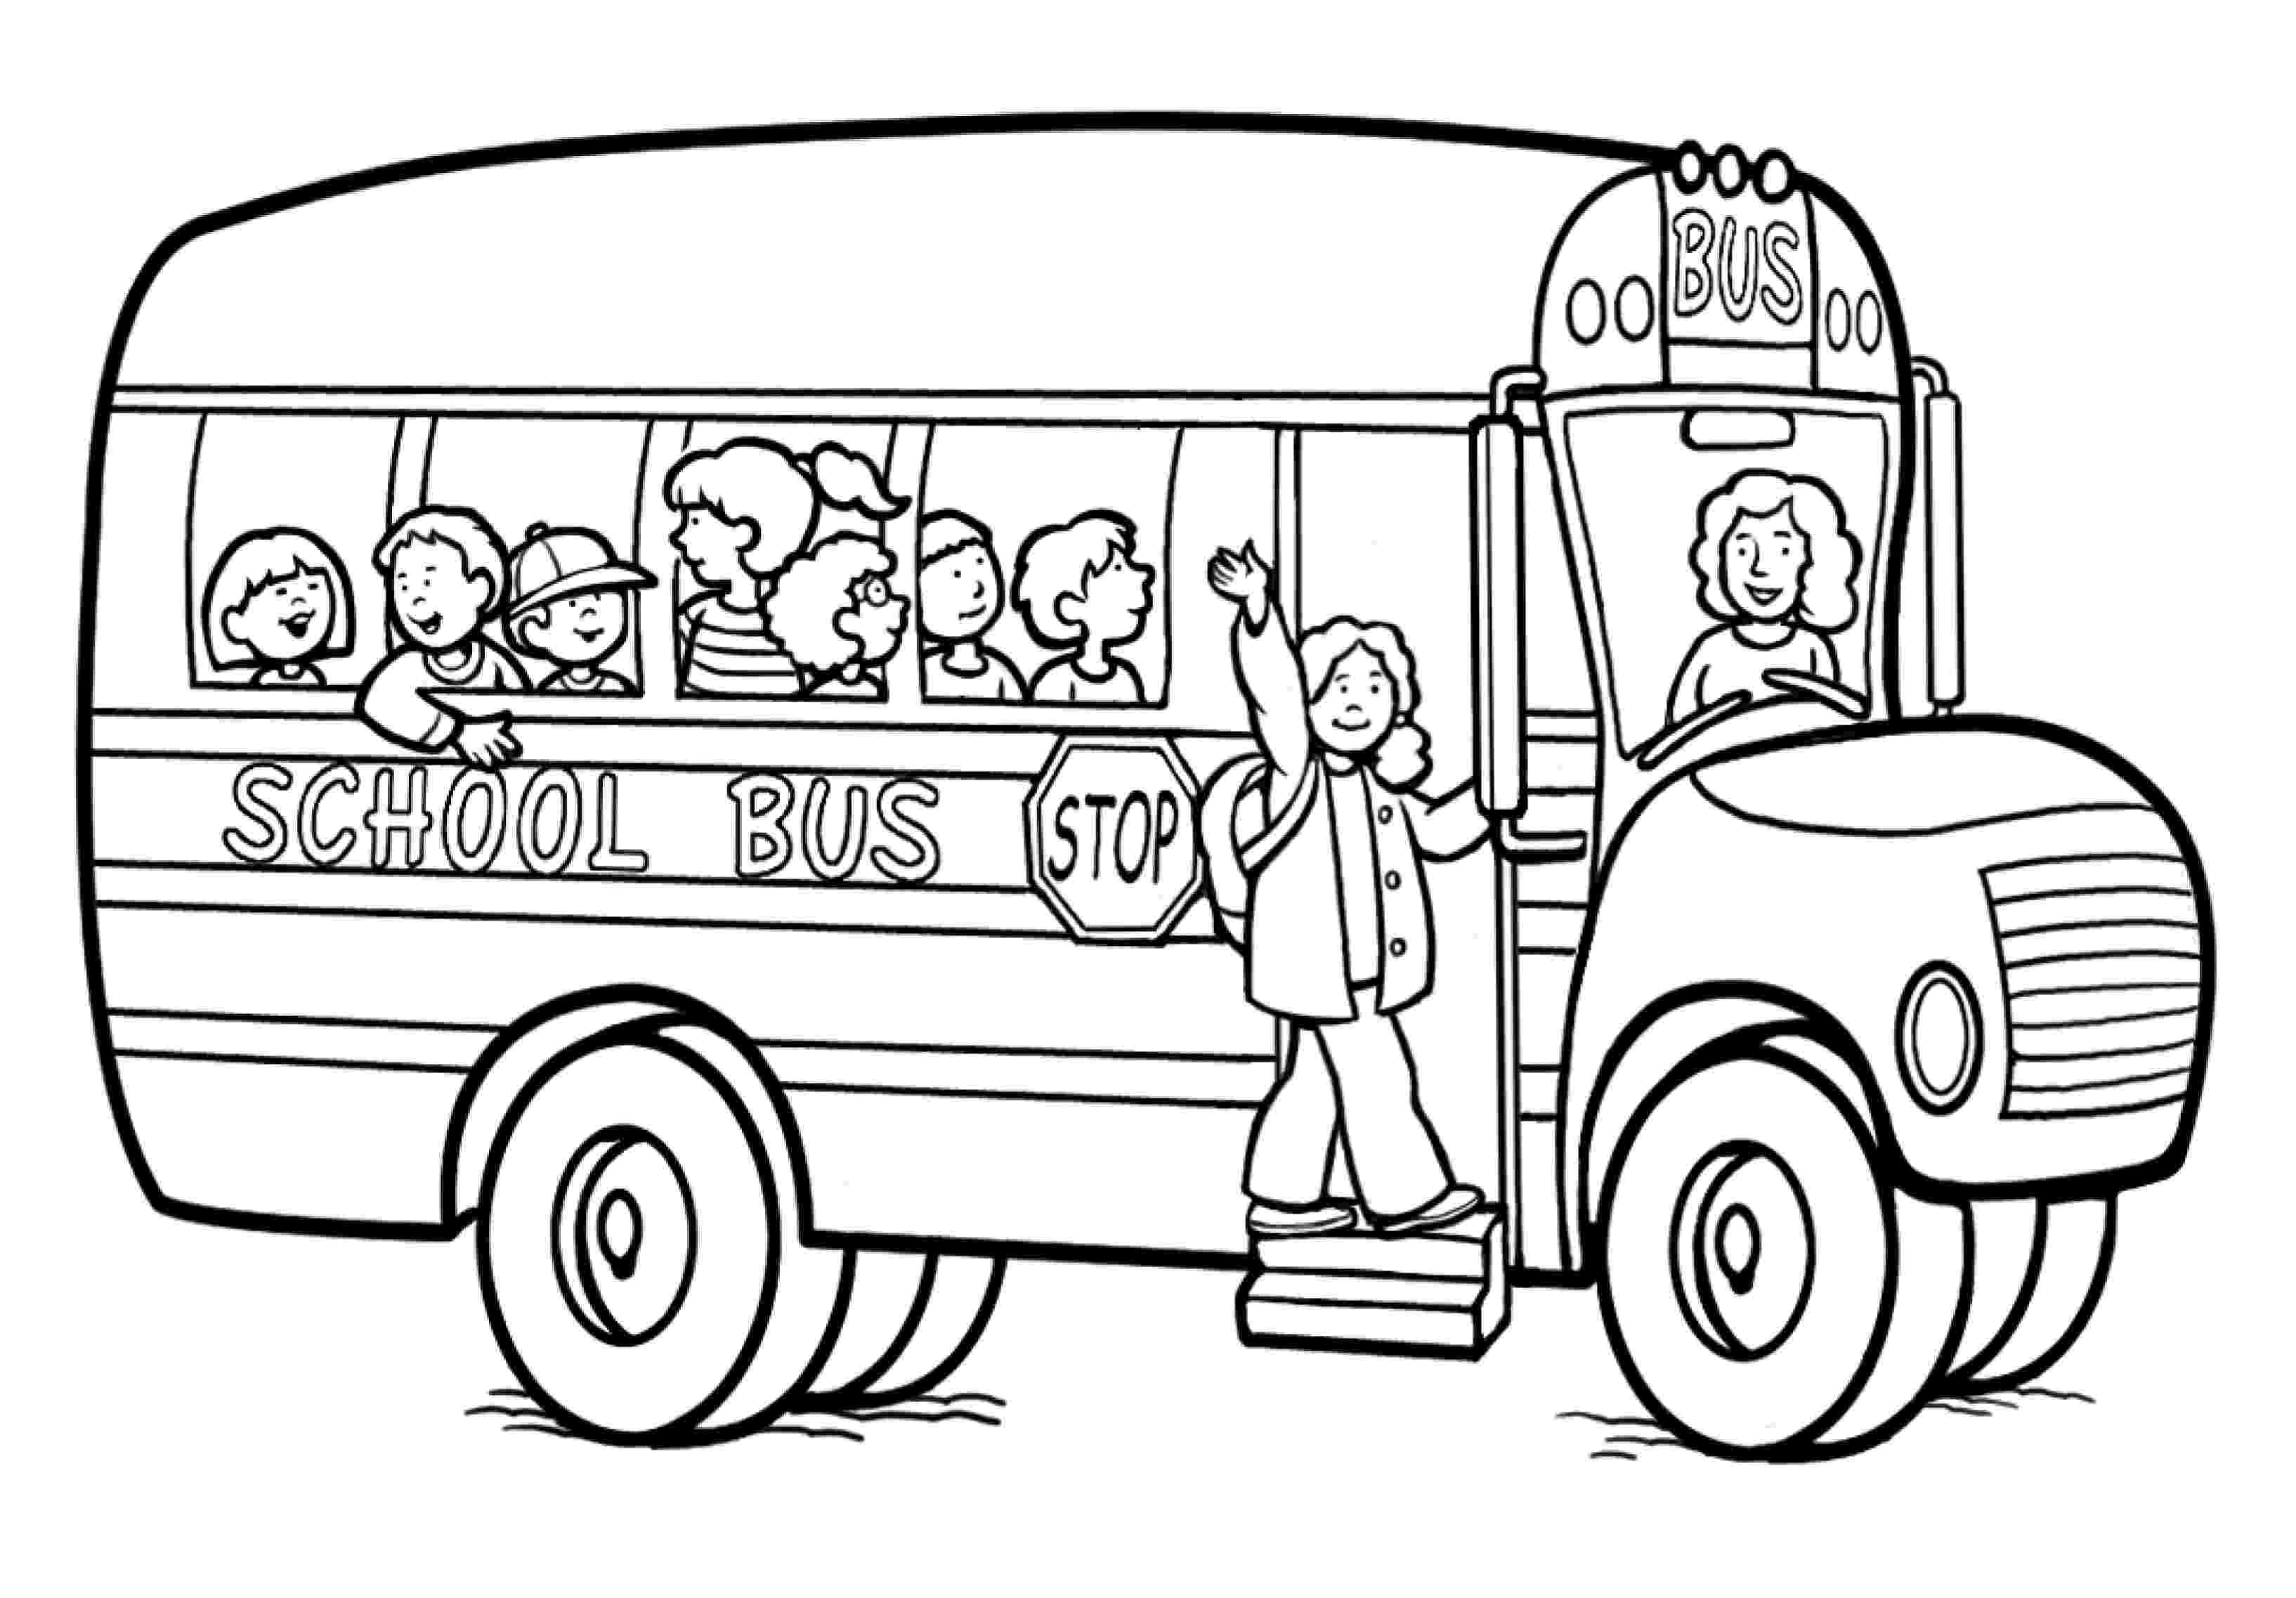 school bus coloring sheet school bus coloring pages getcoloringpagescom school sheet coloring bus